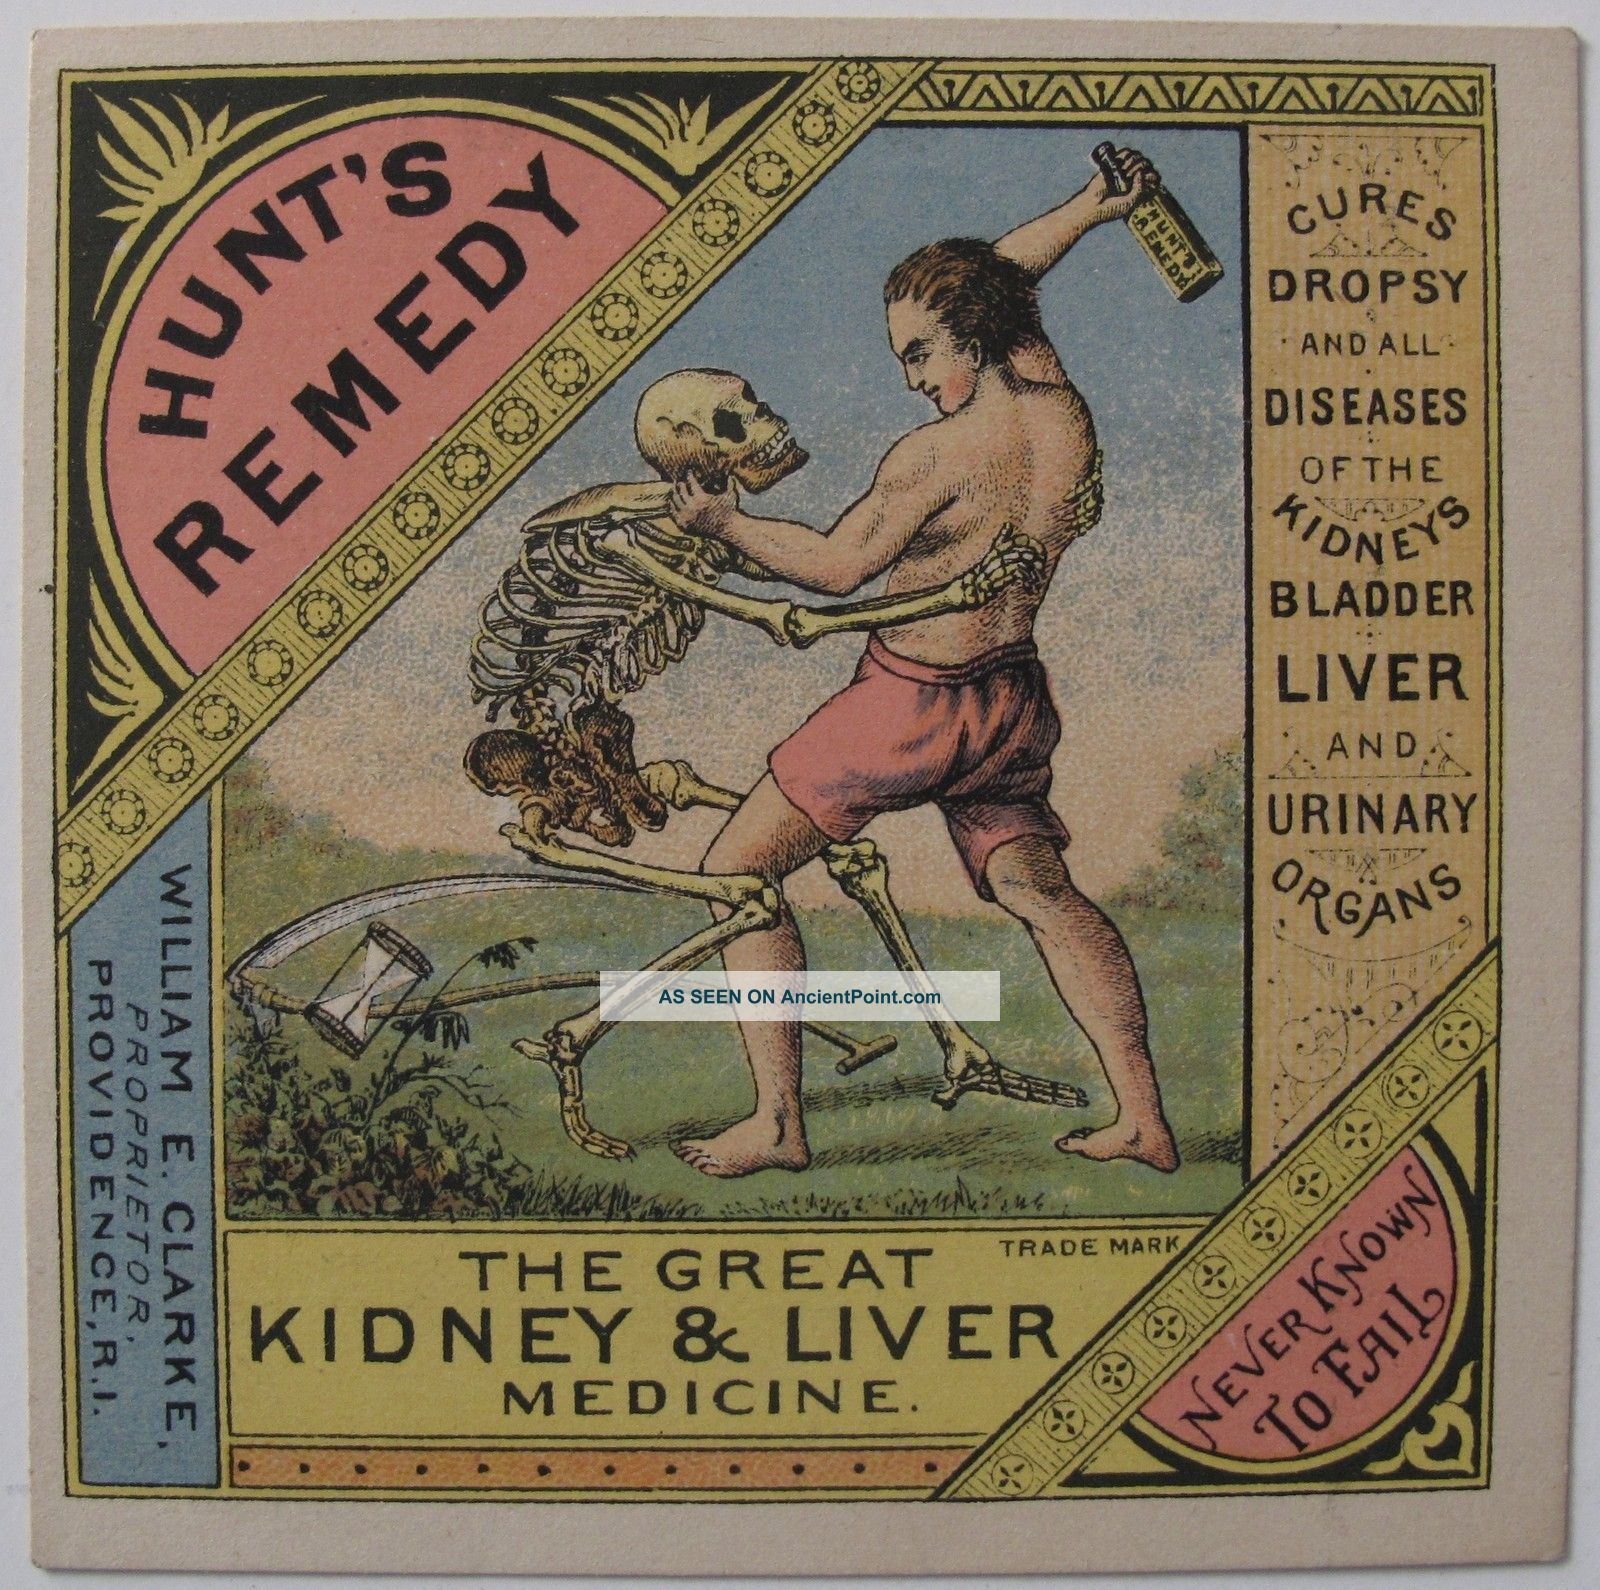 hunts remedy grim reaper skeleton kidney cure advertising mogadonia upthecountry victorian trade card hunt s remedy patent medicine miami university ohio libraries digital collections excellent collection